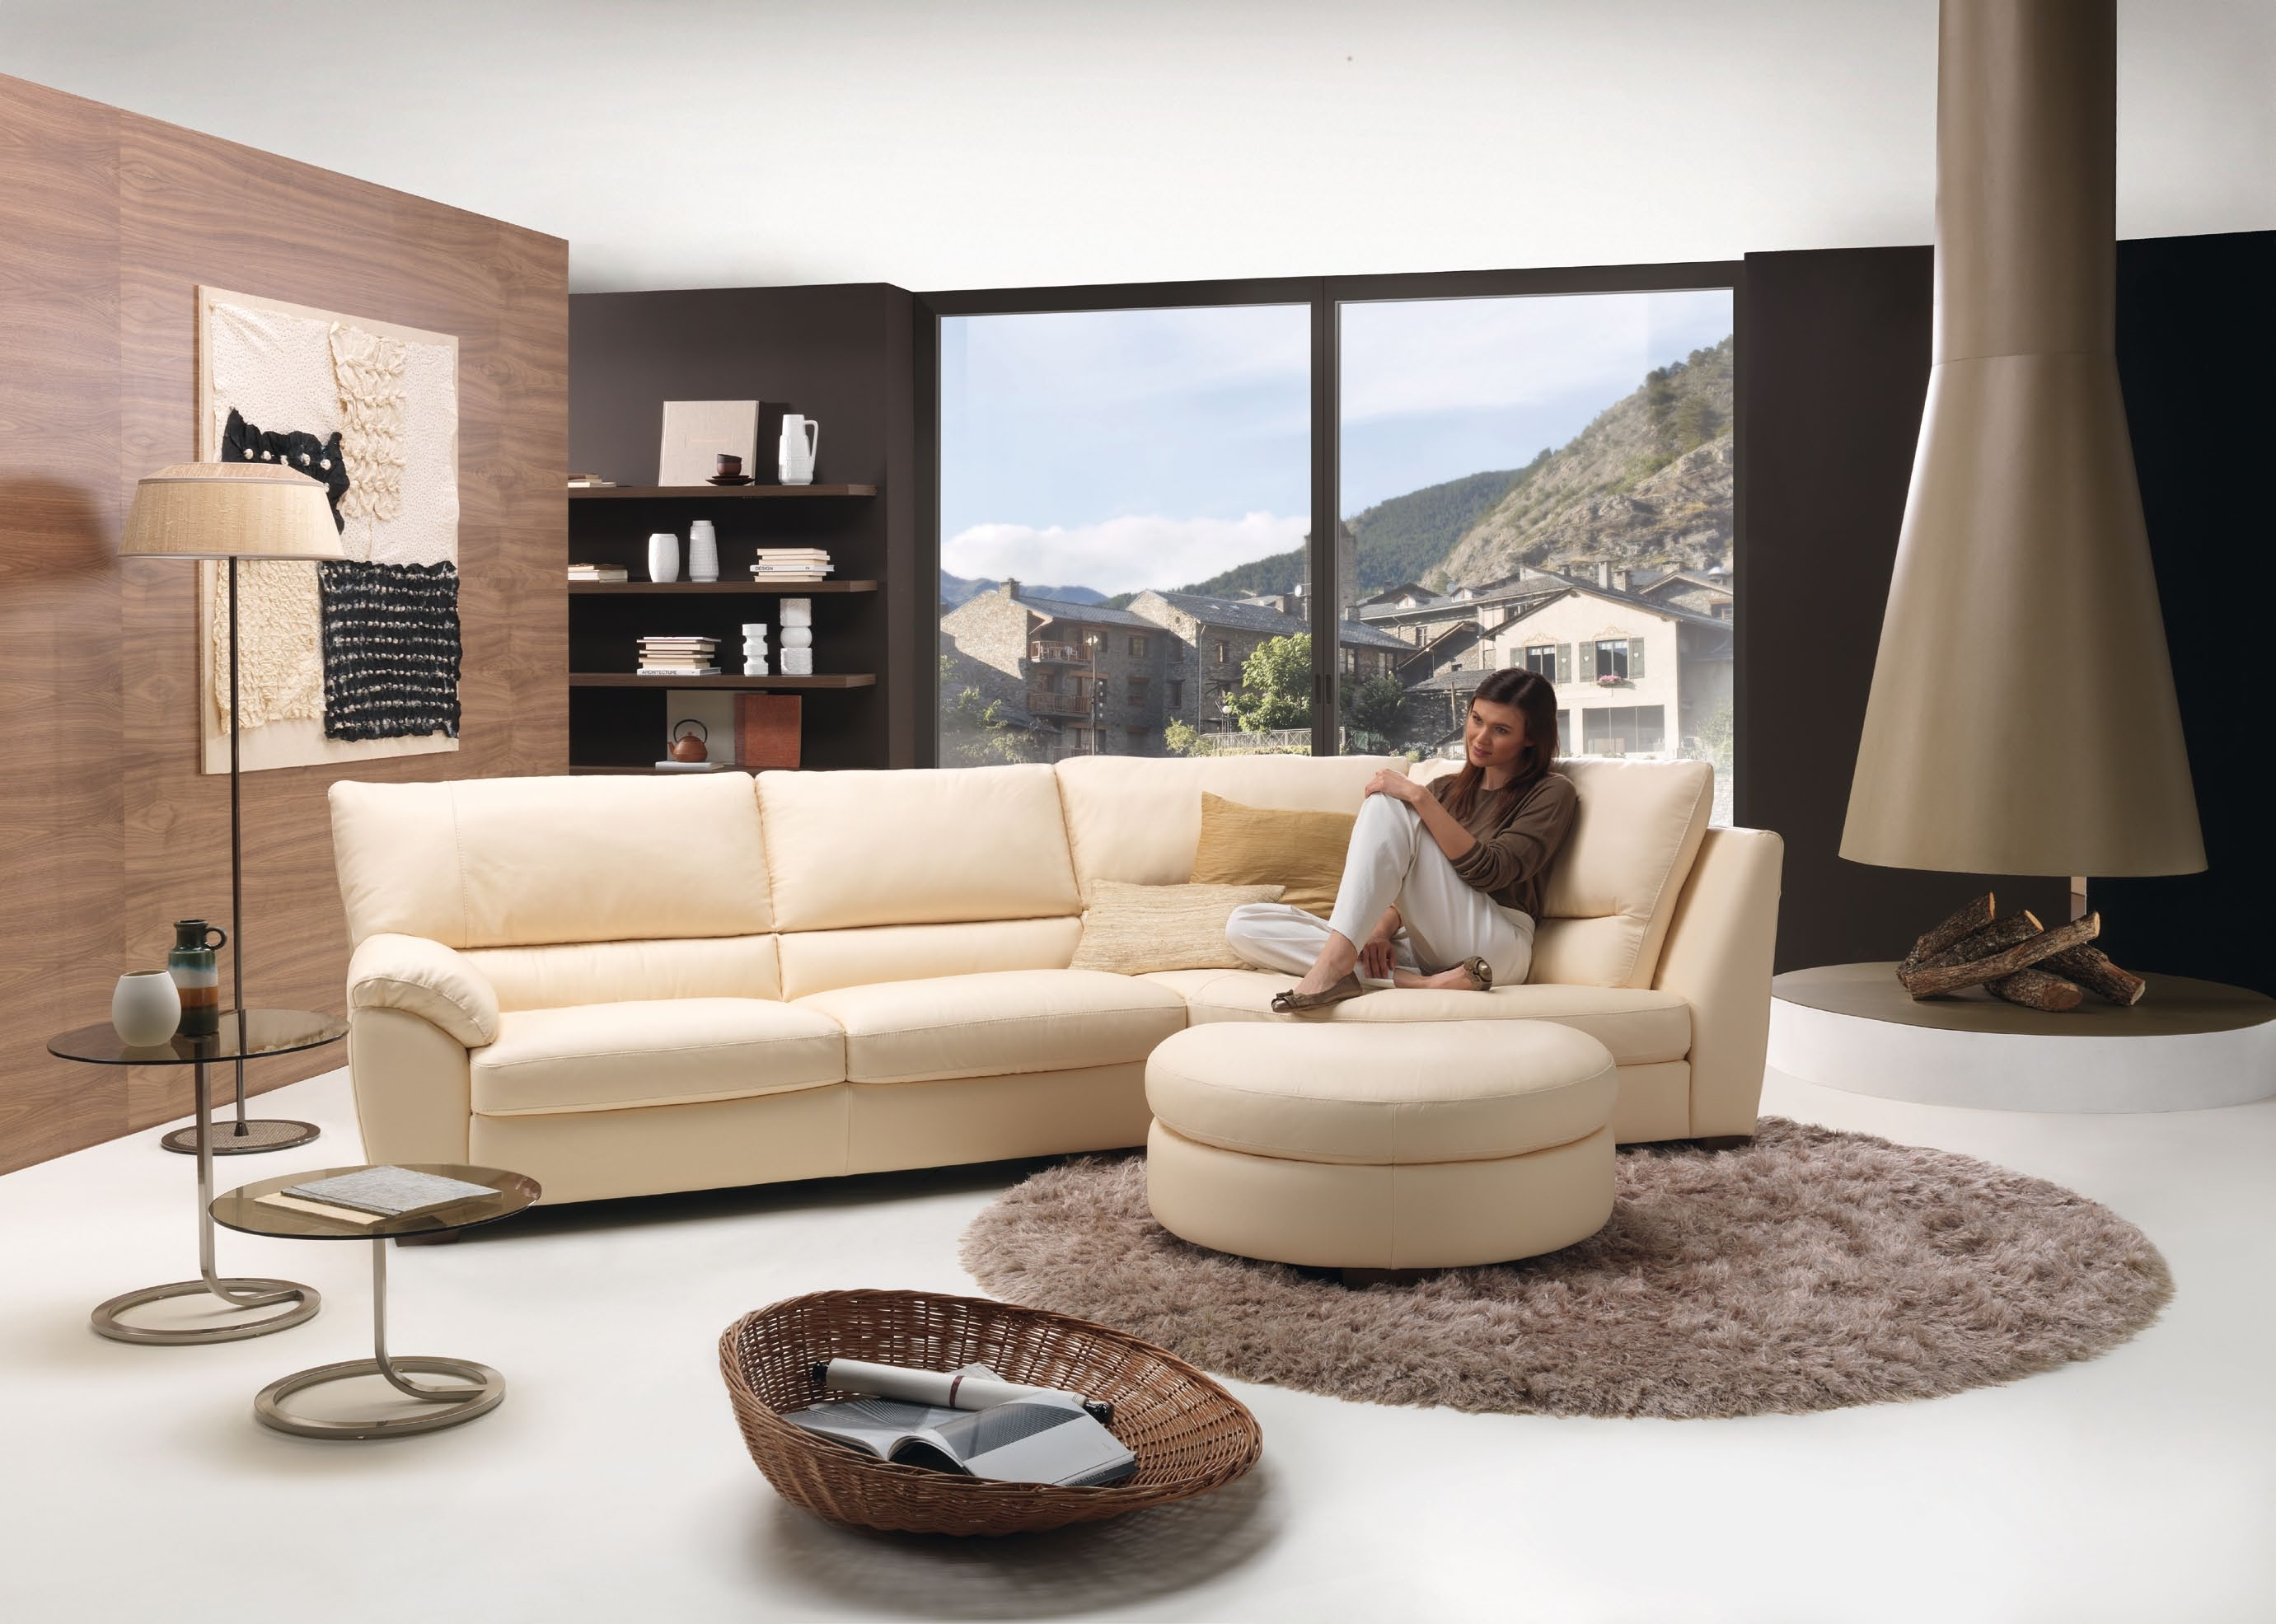 Round Sofa Chair Living Room Furniture Raya Furniture With Regard To Sofa Chairs For Living Room (Image 14 of 15)